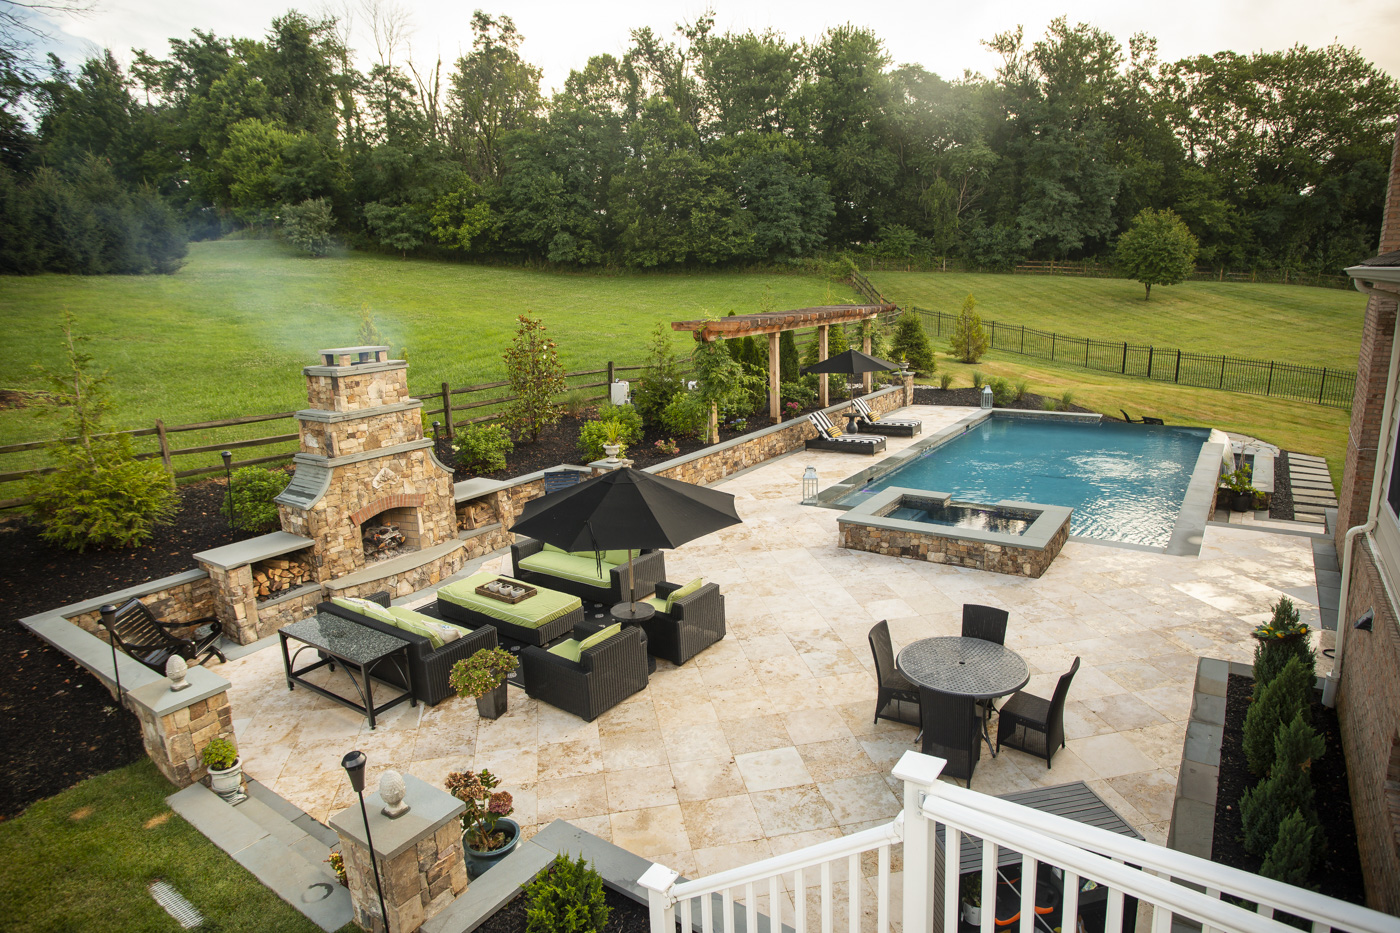 8 Hardscape Design Ideas for Your Backyard in Northern Virginia